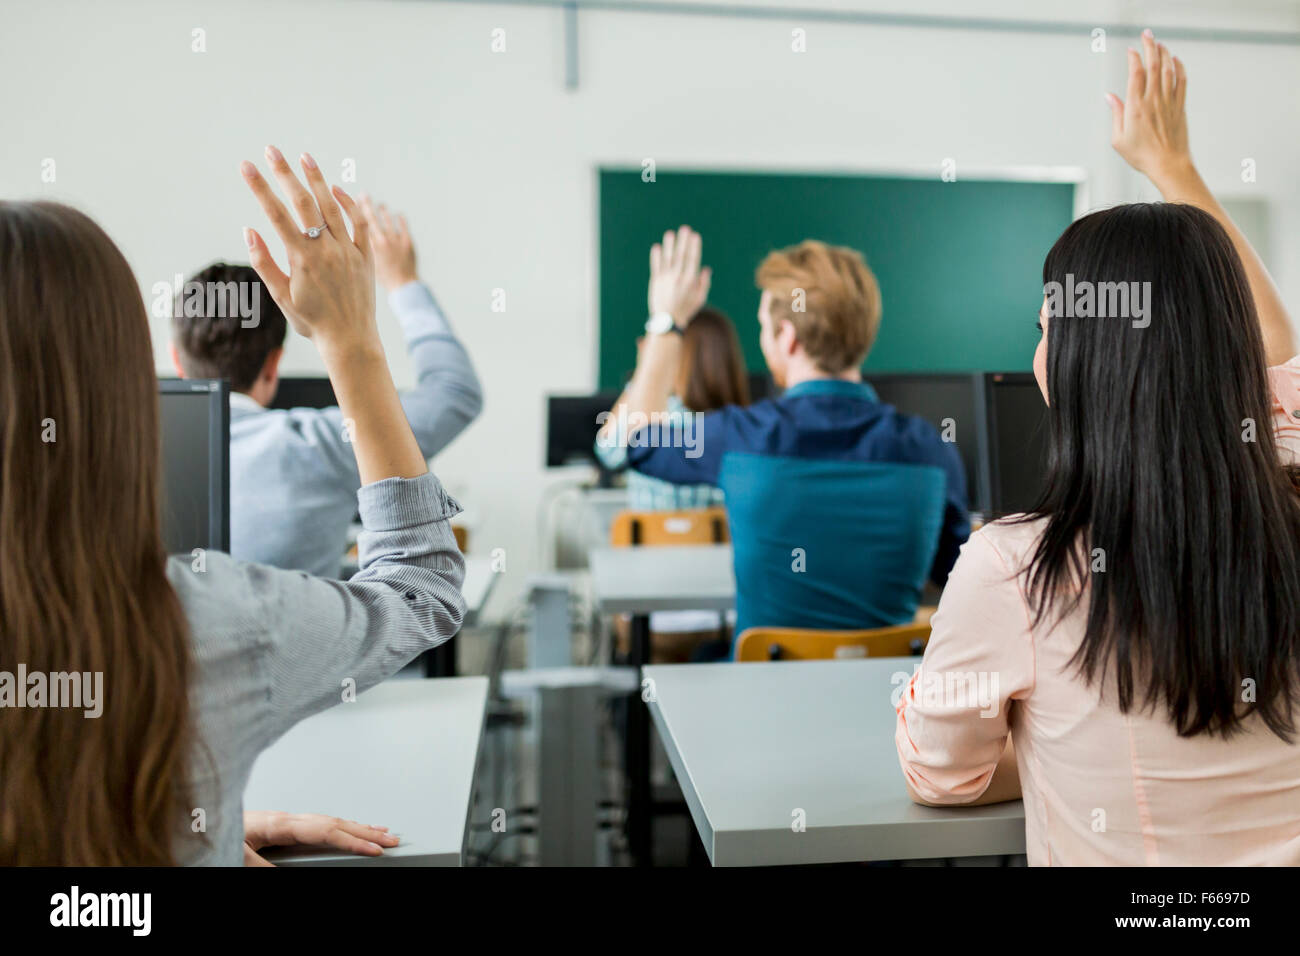 Young students raising hands in a classroom showing they are ready - Stock Image